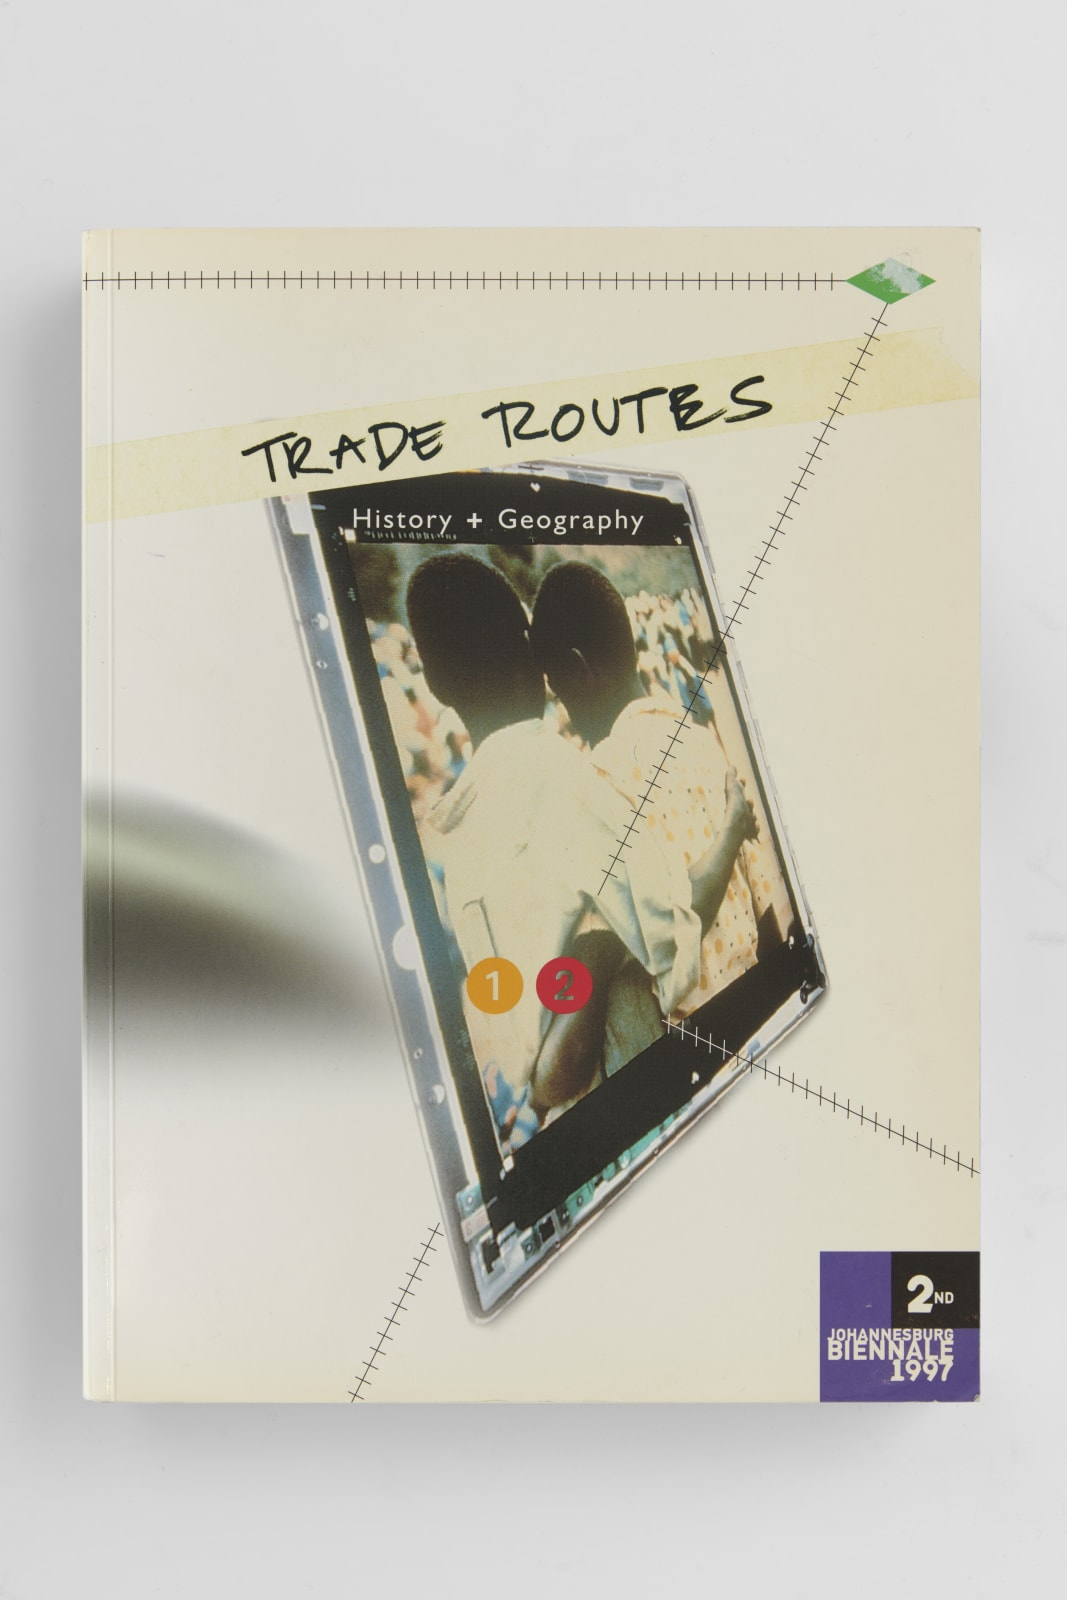 Made Routes: Mapping and Making